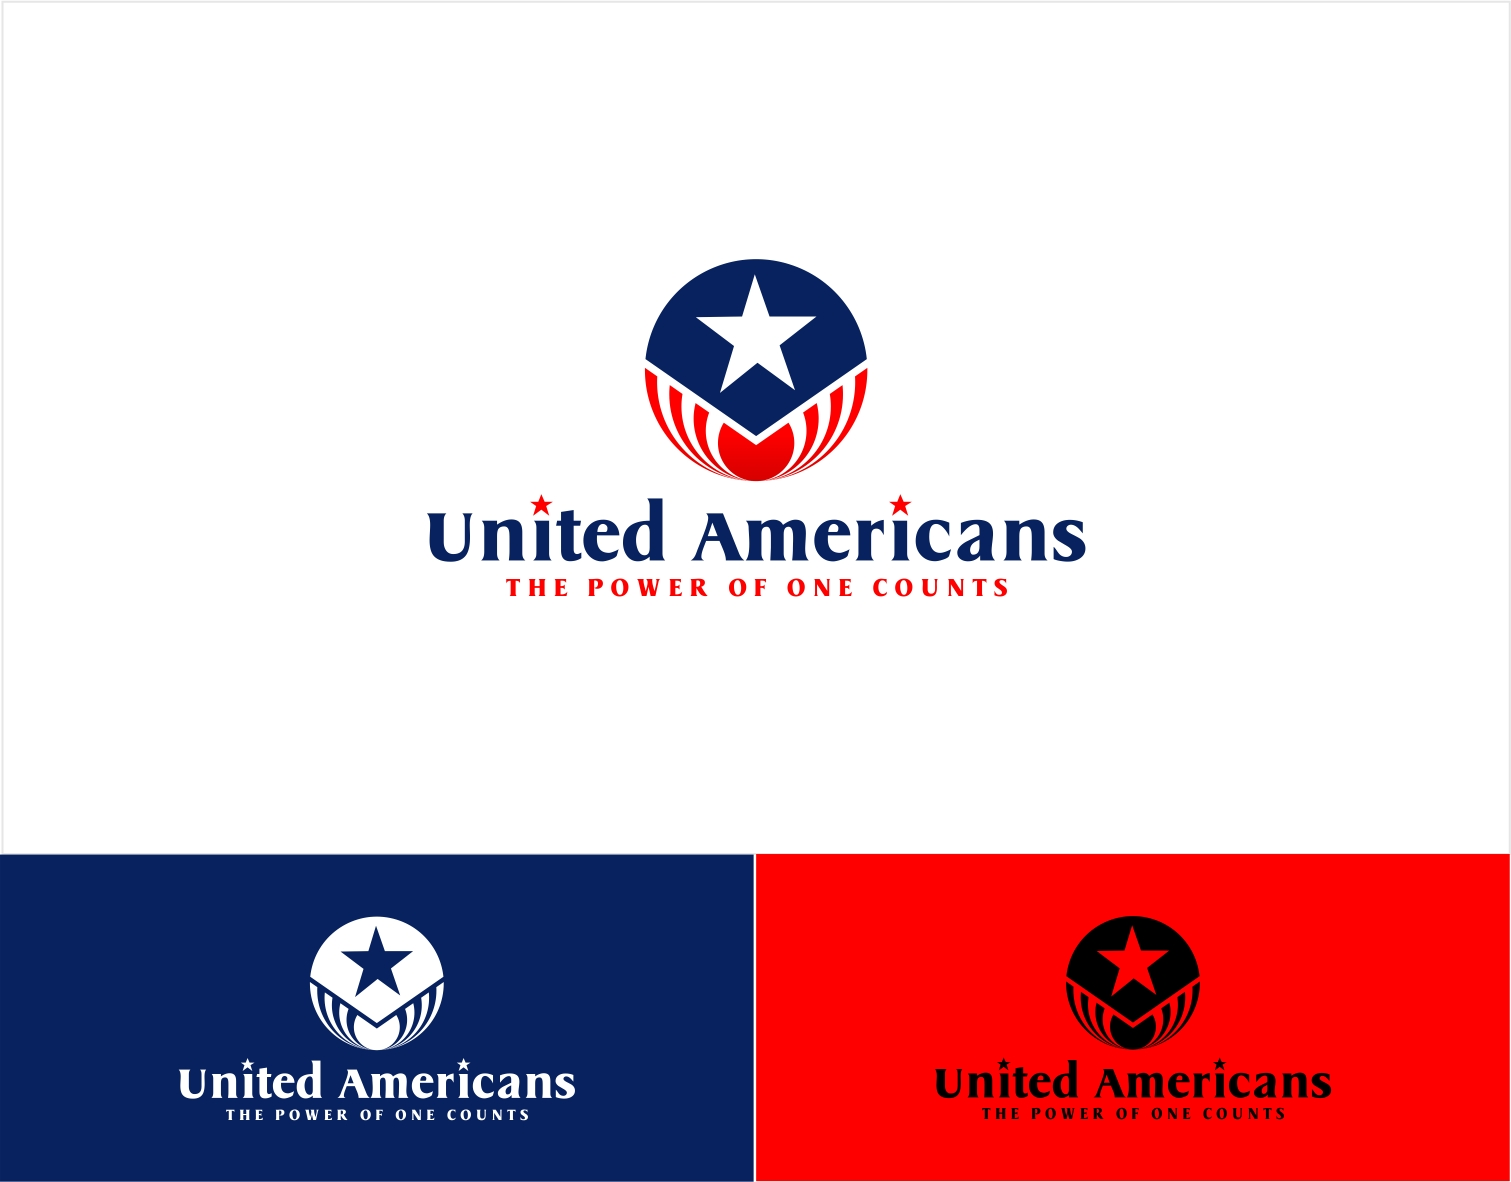 Logo Design by haidu - Entry No. 157 in the Logo Design Contest Creative Logo Design for United Americans.